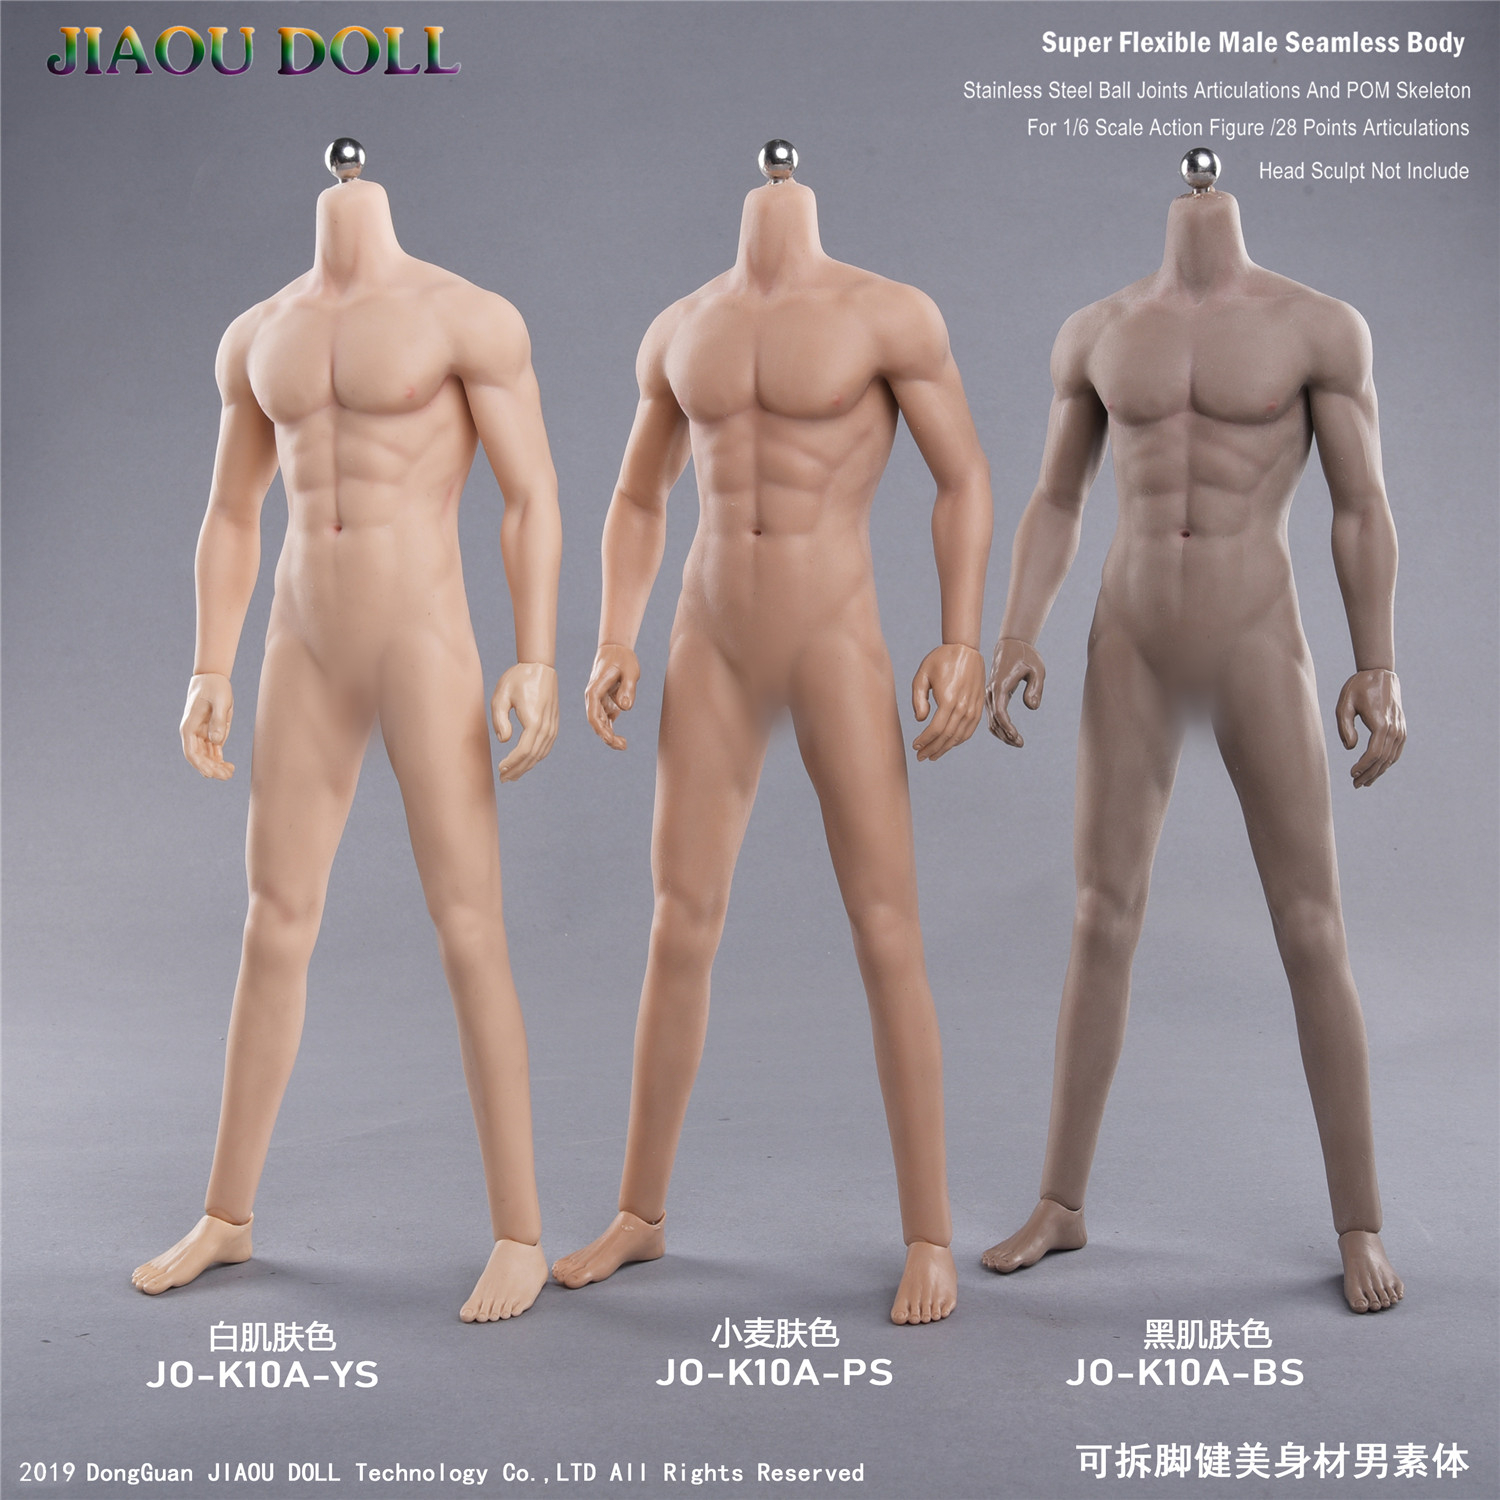 New Jiaou Doll 1/6 Muscular Body Figure Male Seamless Body Stainless Steel Ball Joints Pom Skeleton For 12 Inches Action Figure